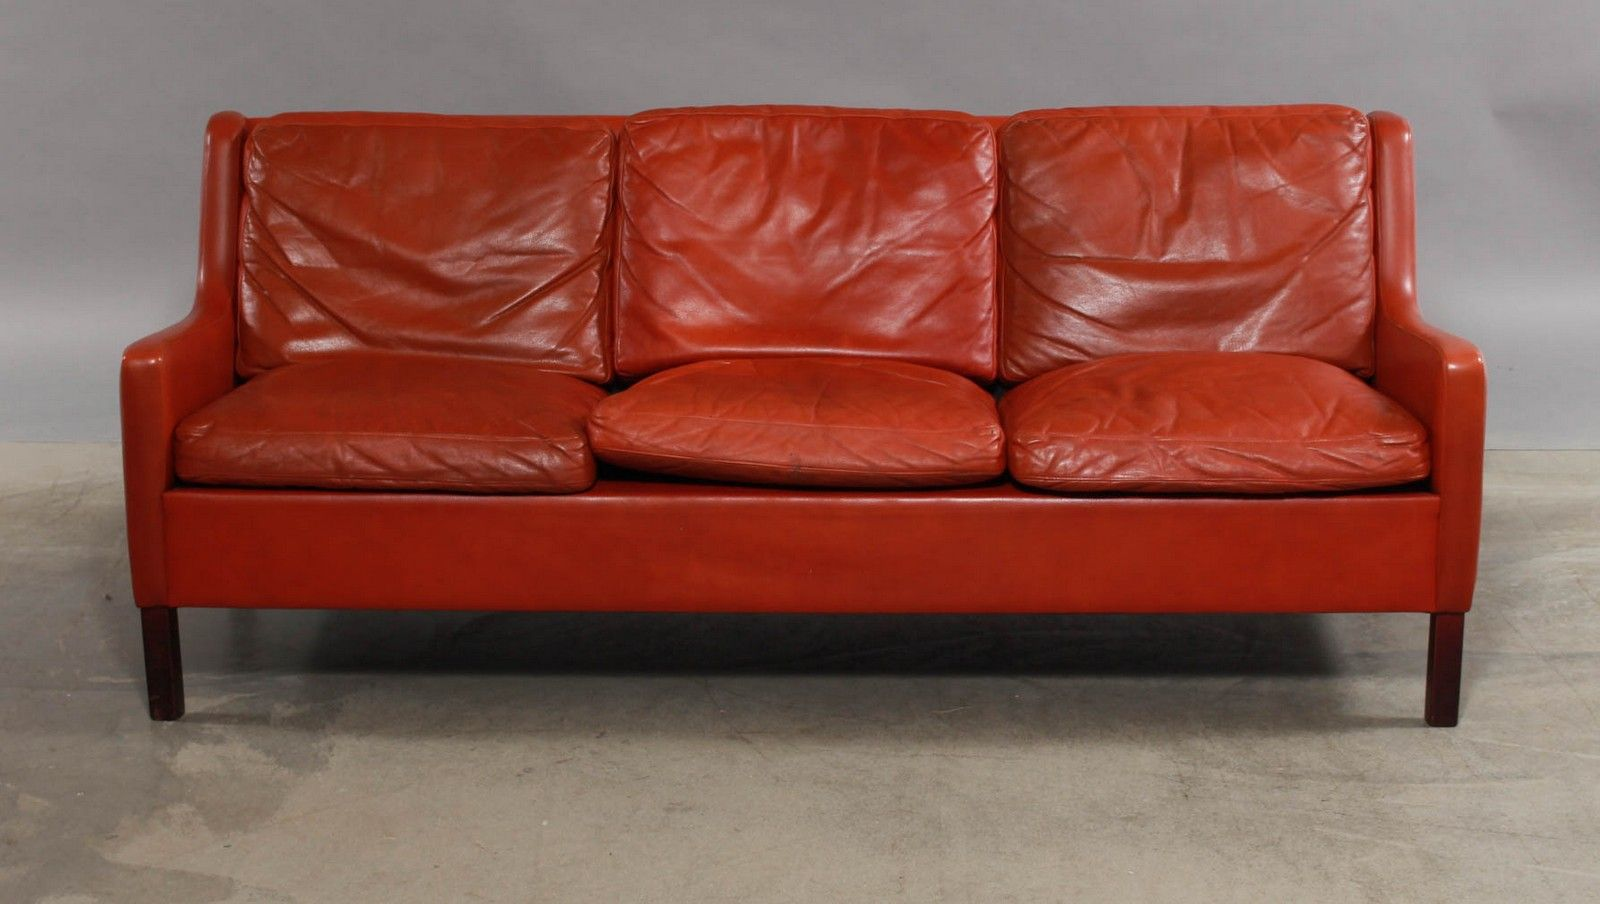 Vintage Scandinavian 3 Seater Red Leather Sofa